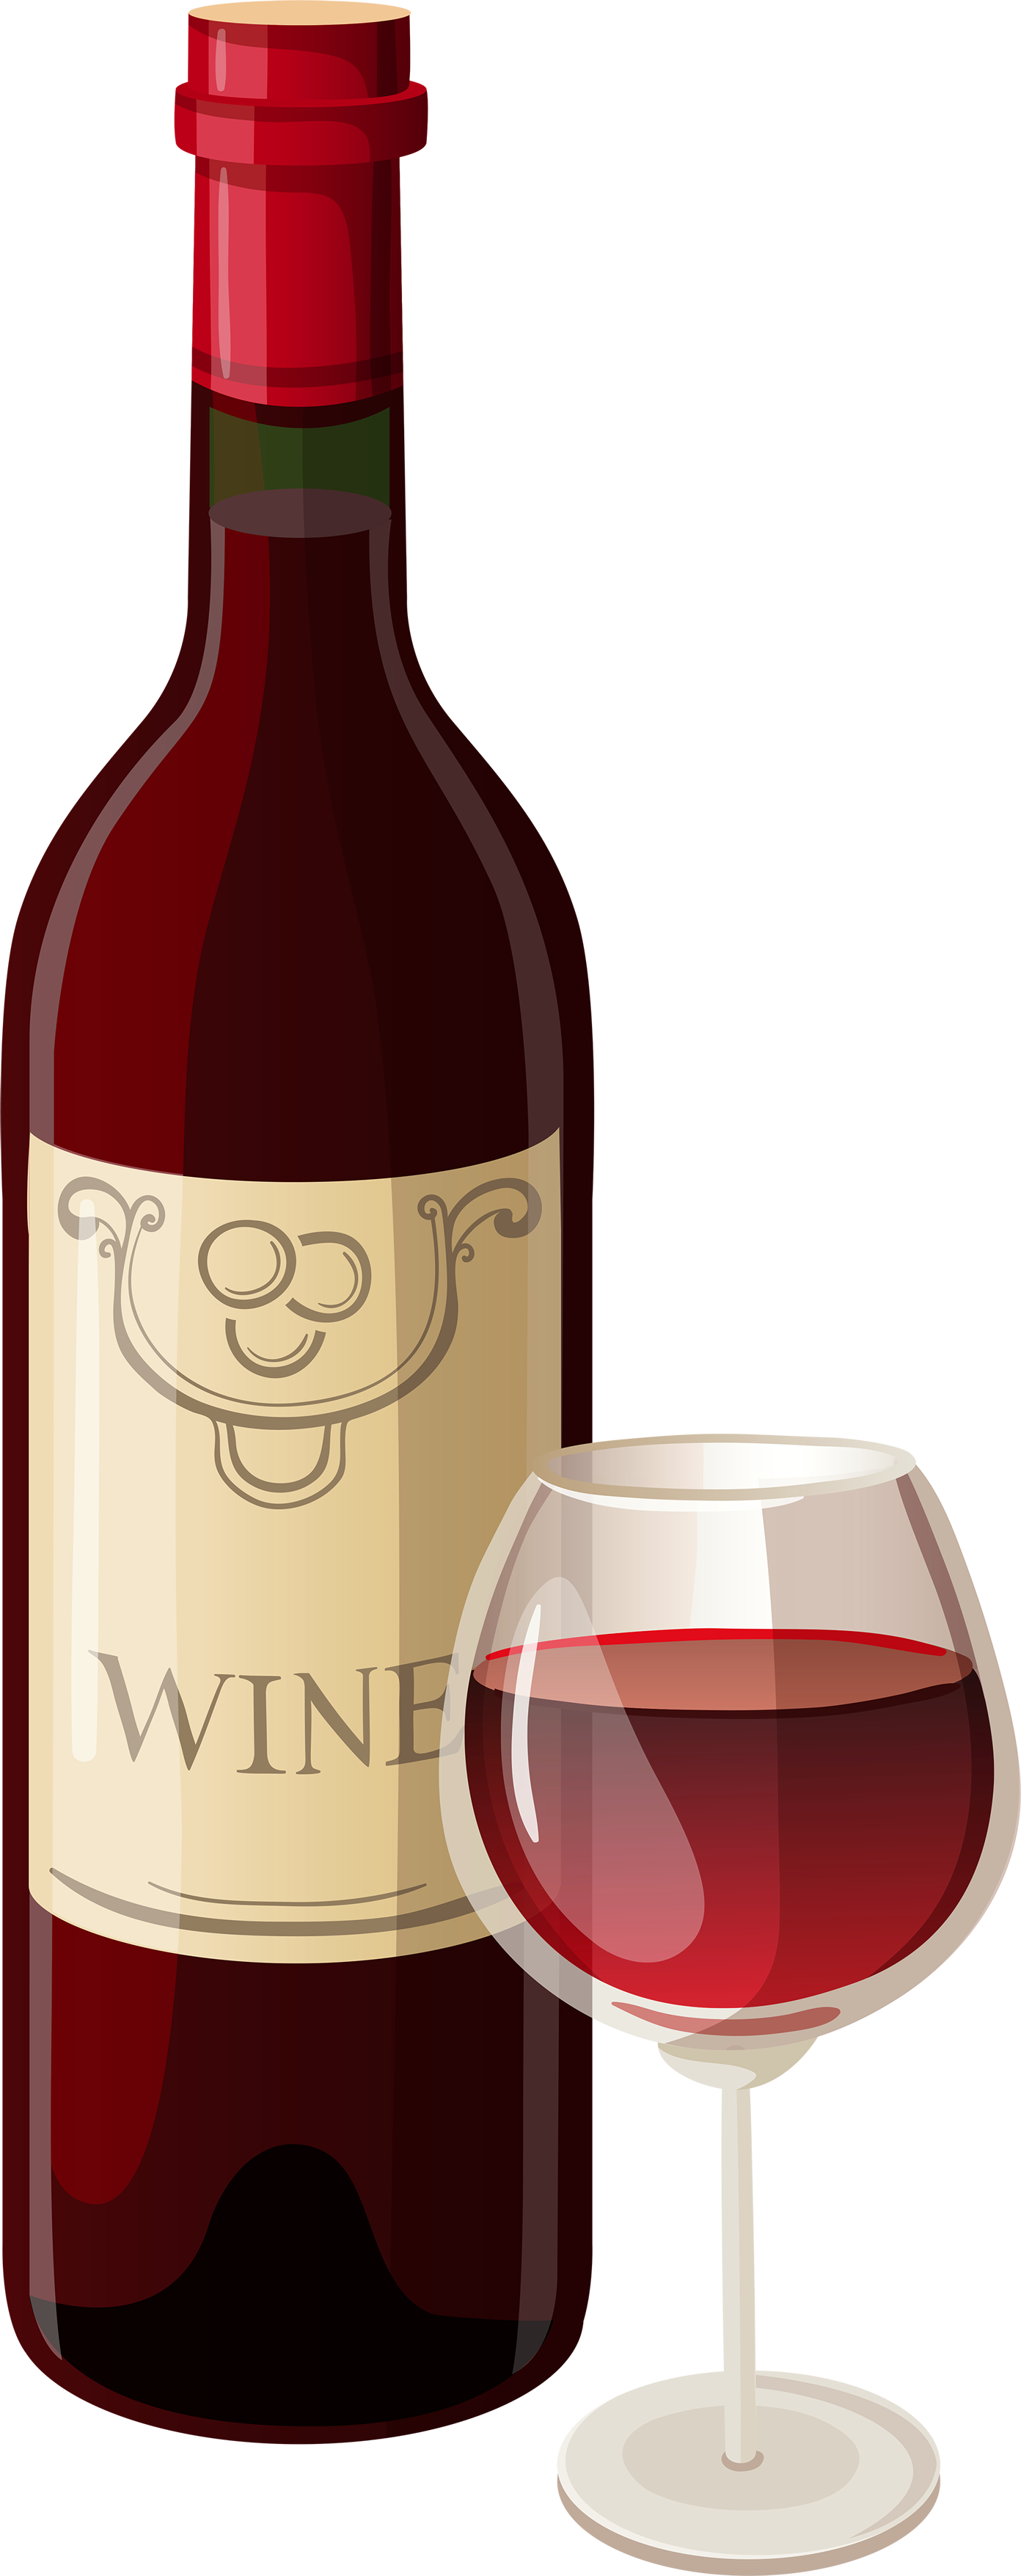 Images free download image. Wine bottle and glass png